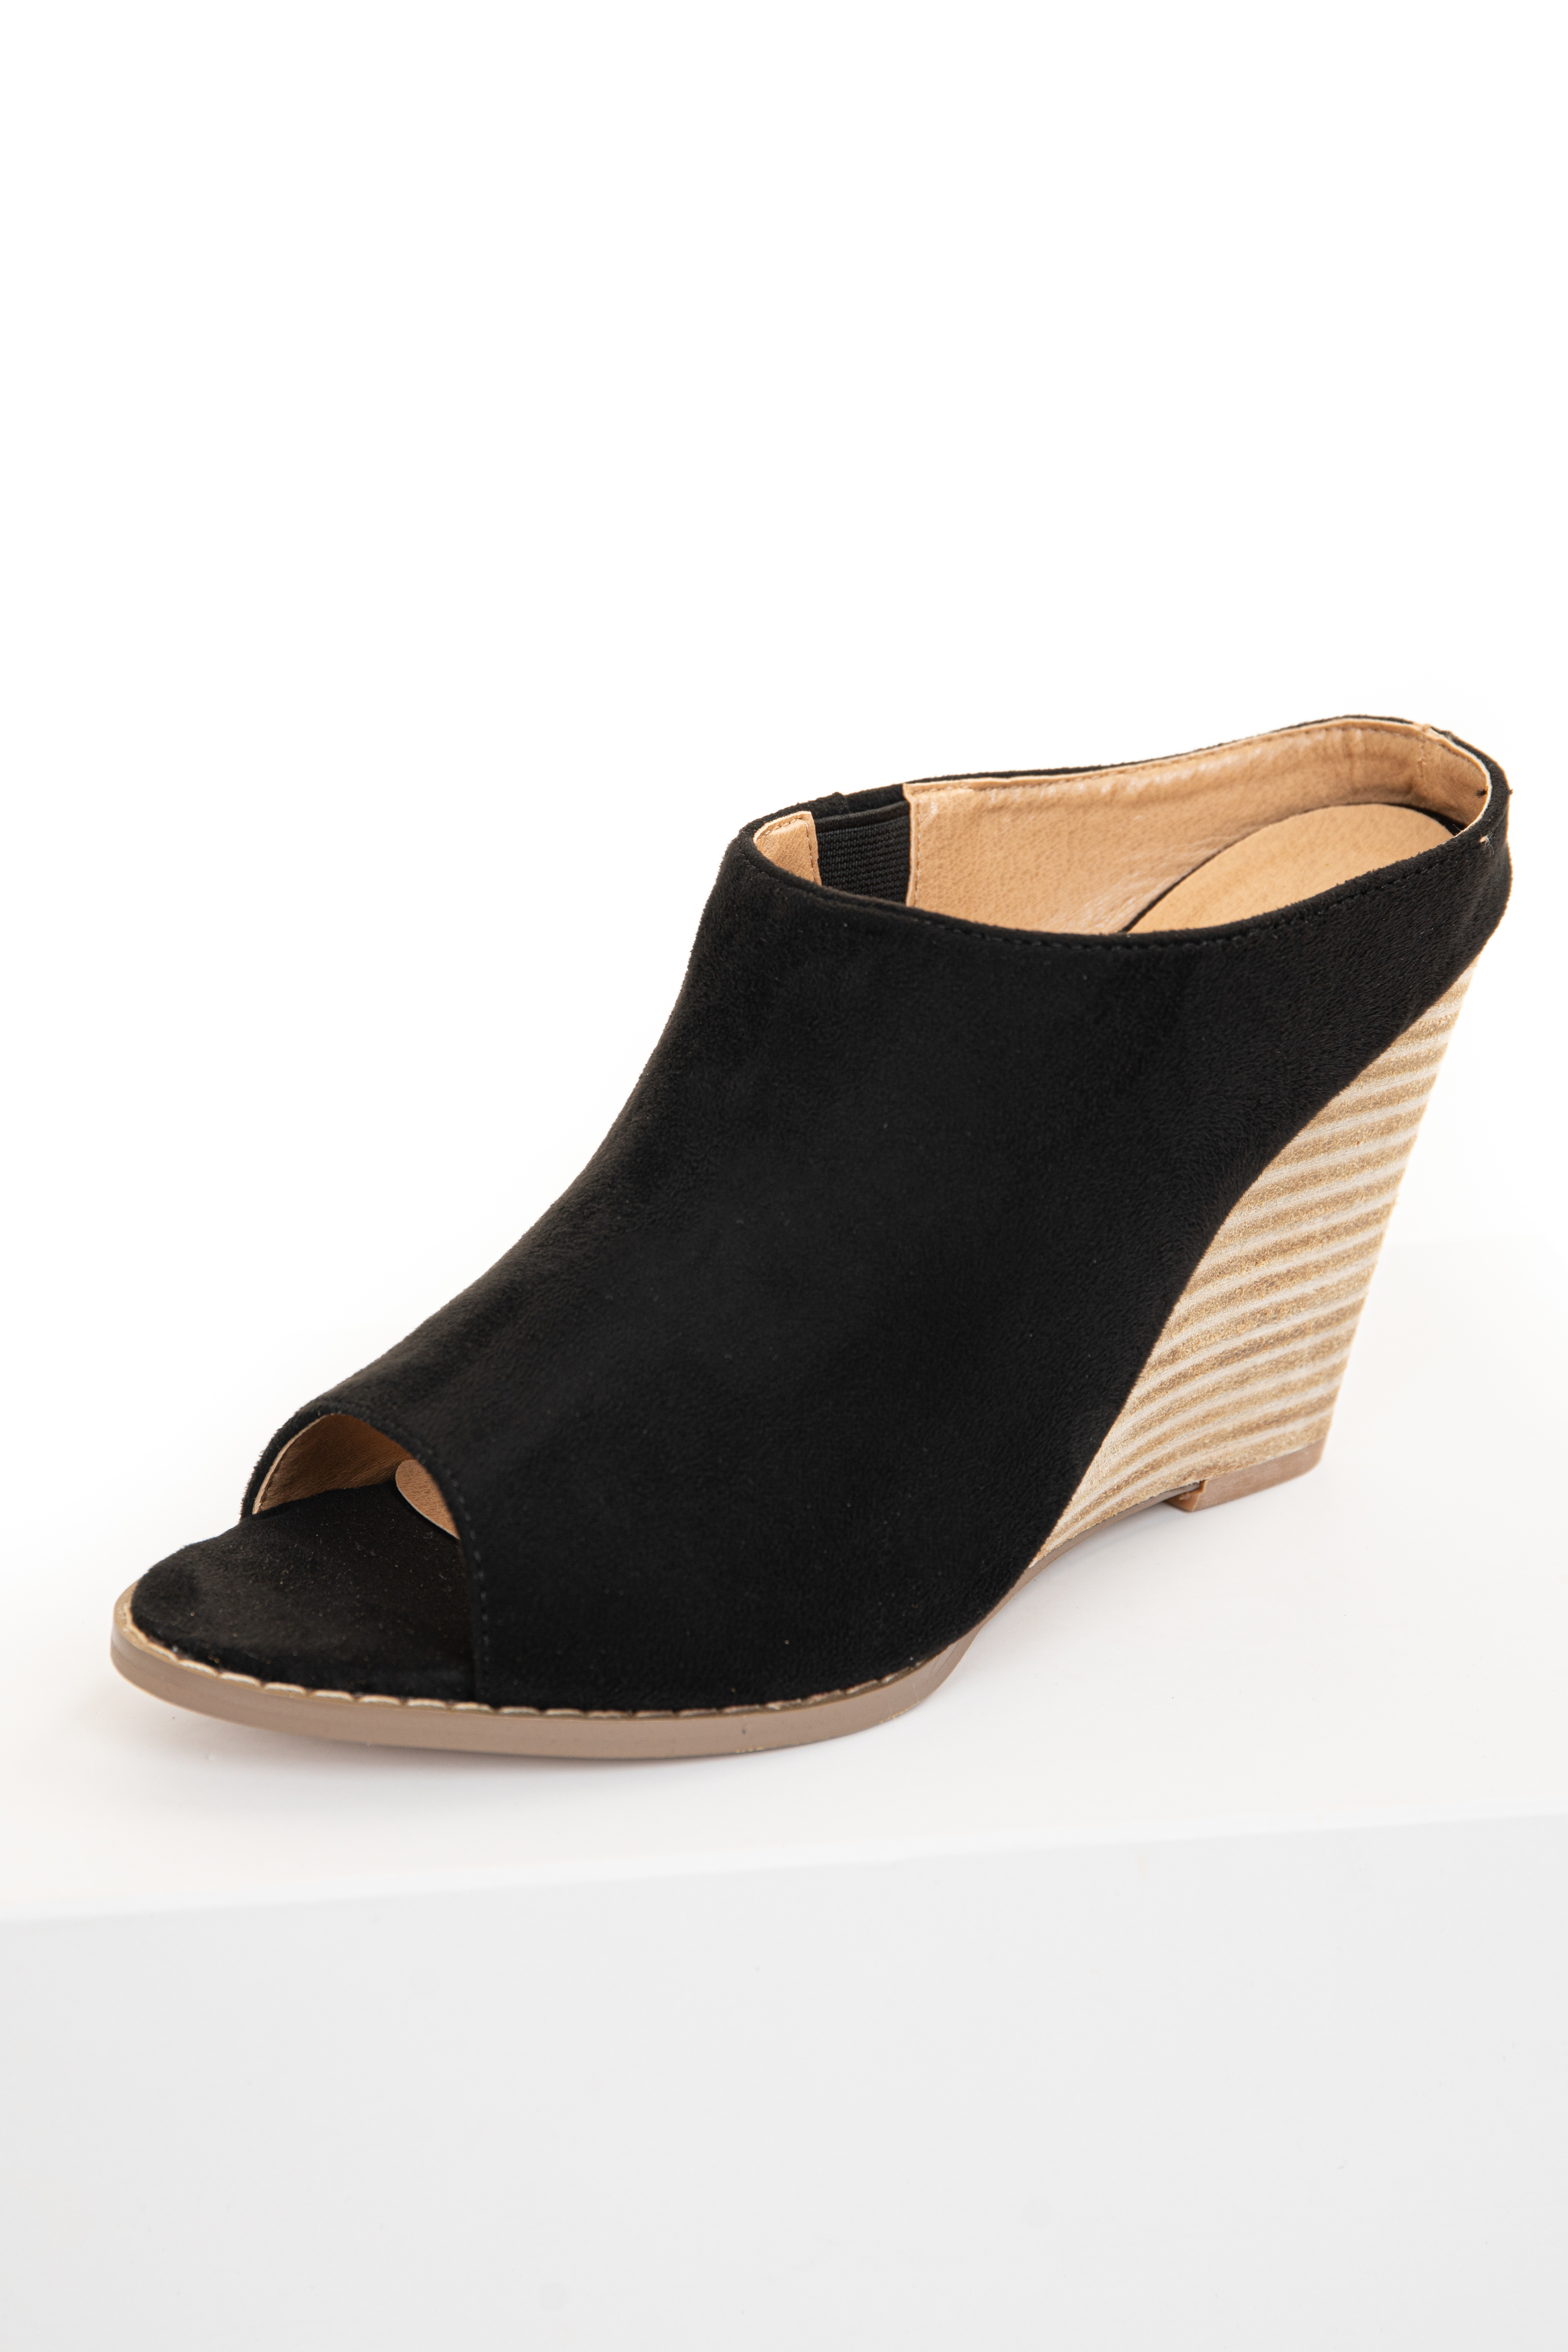 Black Faux Suede Wedge Bootie with Open Toe Detail